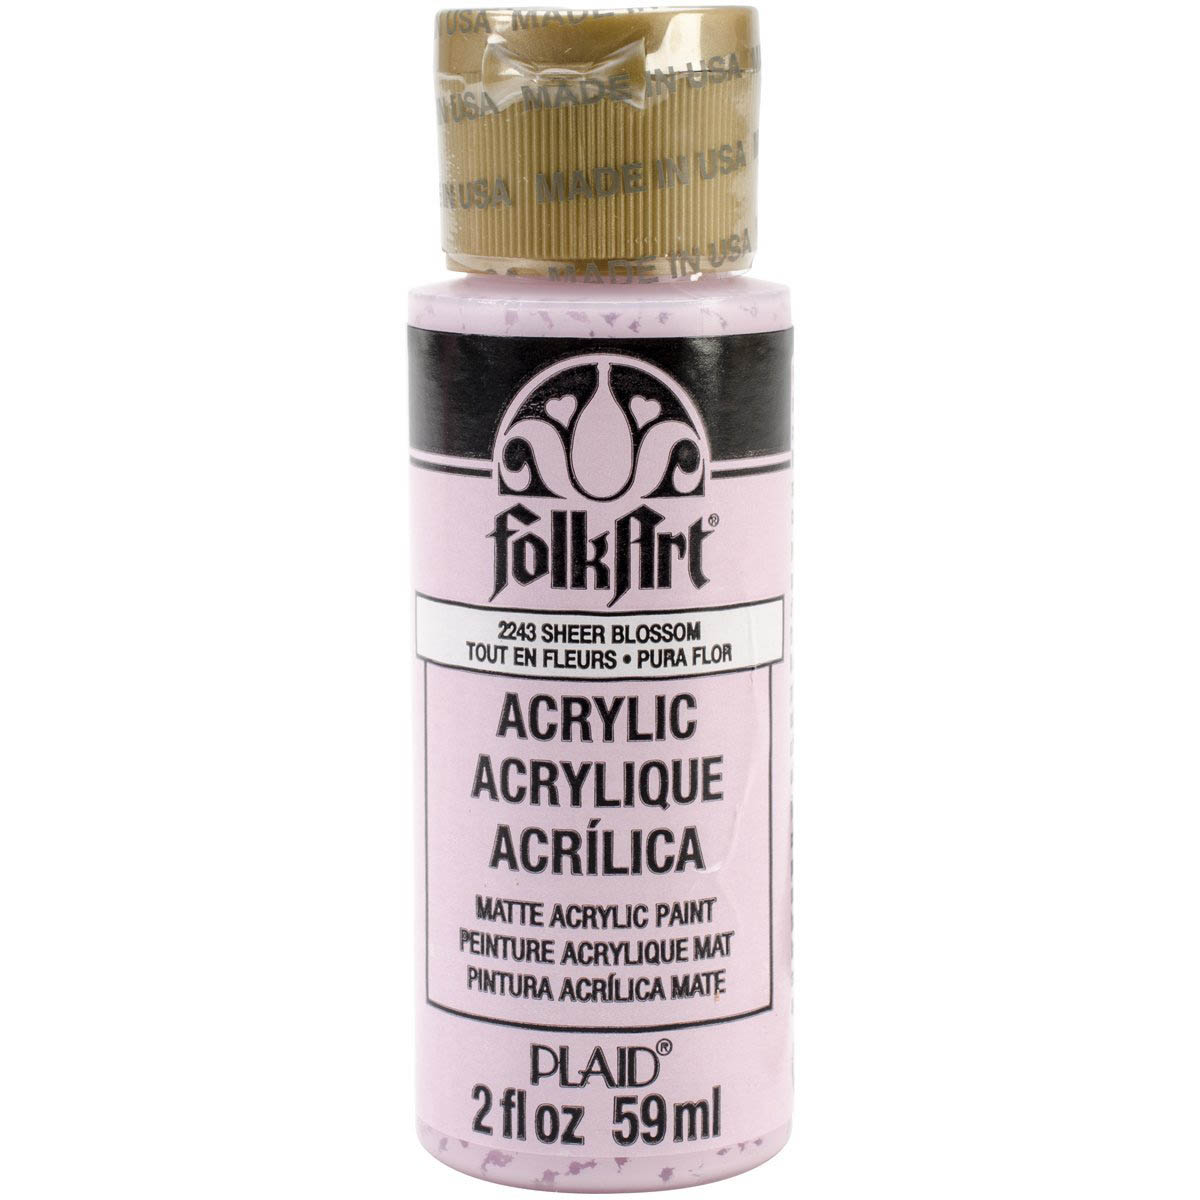 FolkArt ® Acrylic Colors - Sheer Blossom, 2 oz. - 2243